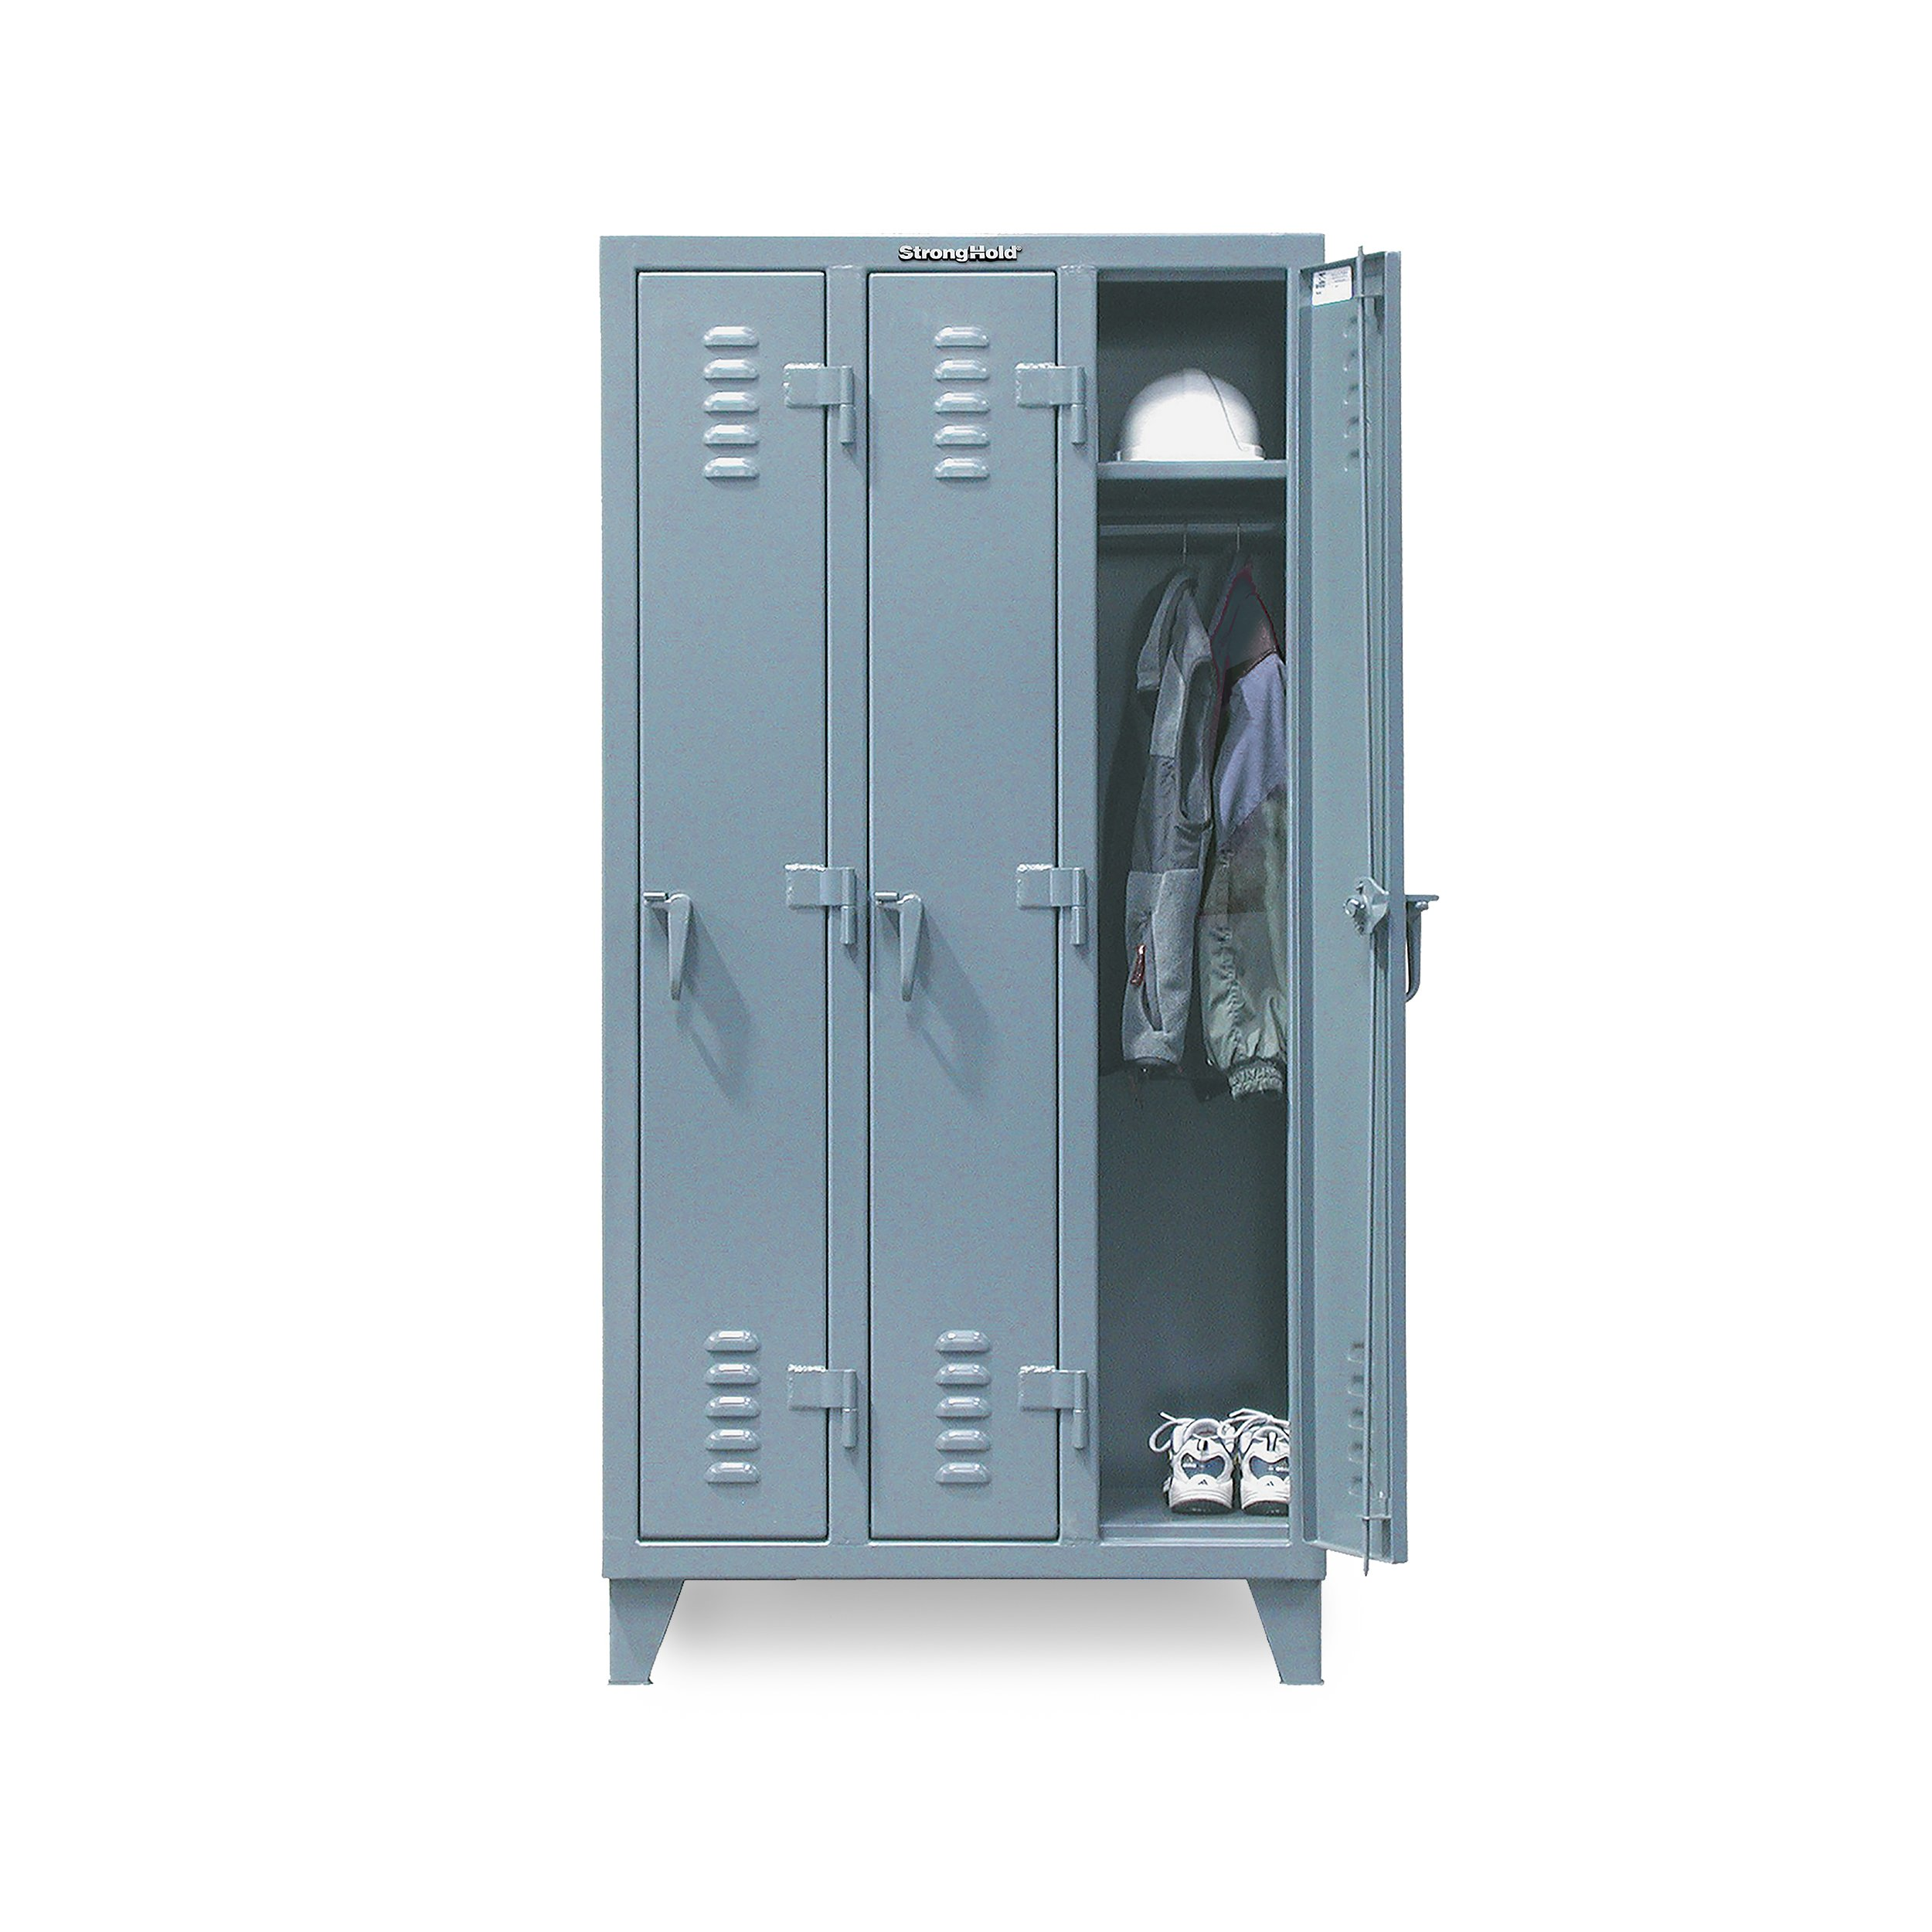 Brilliant Penco Lockers for Best Locker Choice: Locker Dimensions Gym | Penco Lockers | Penco Greenville Nc